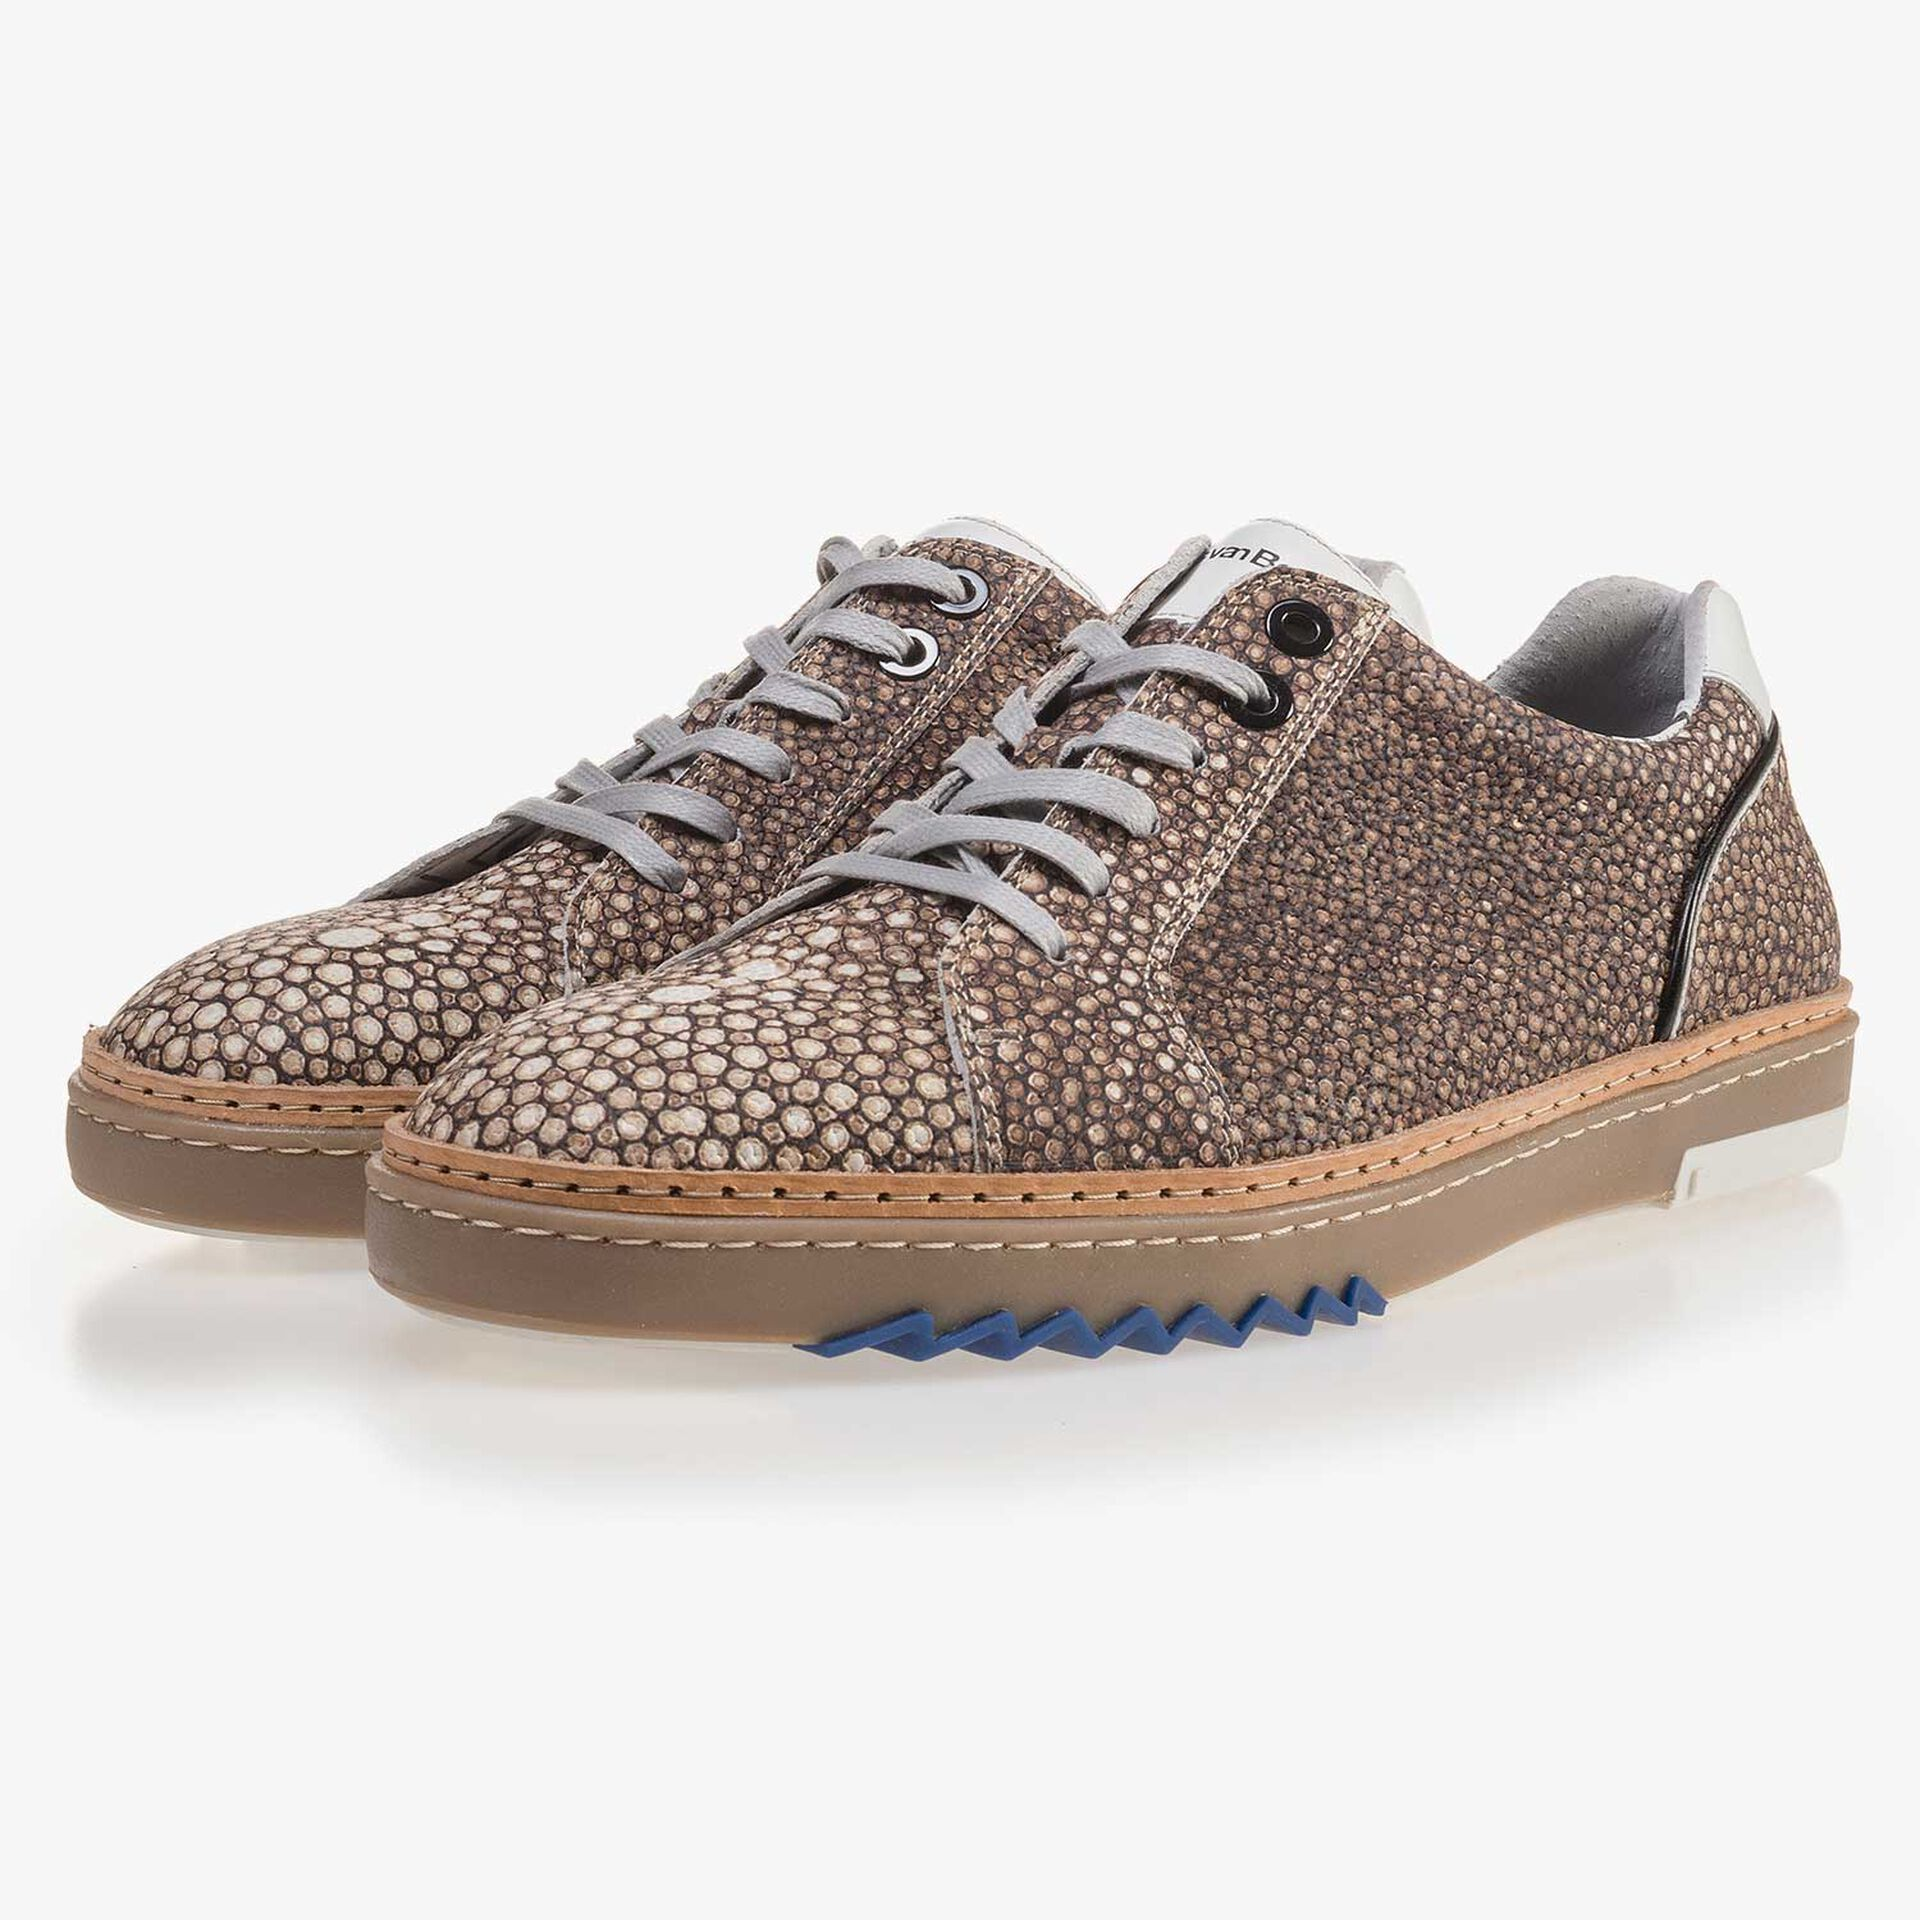 Brown, patterned leather sneaker